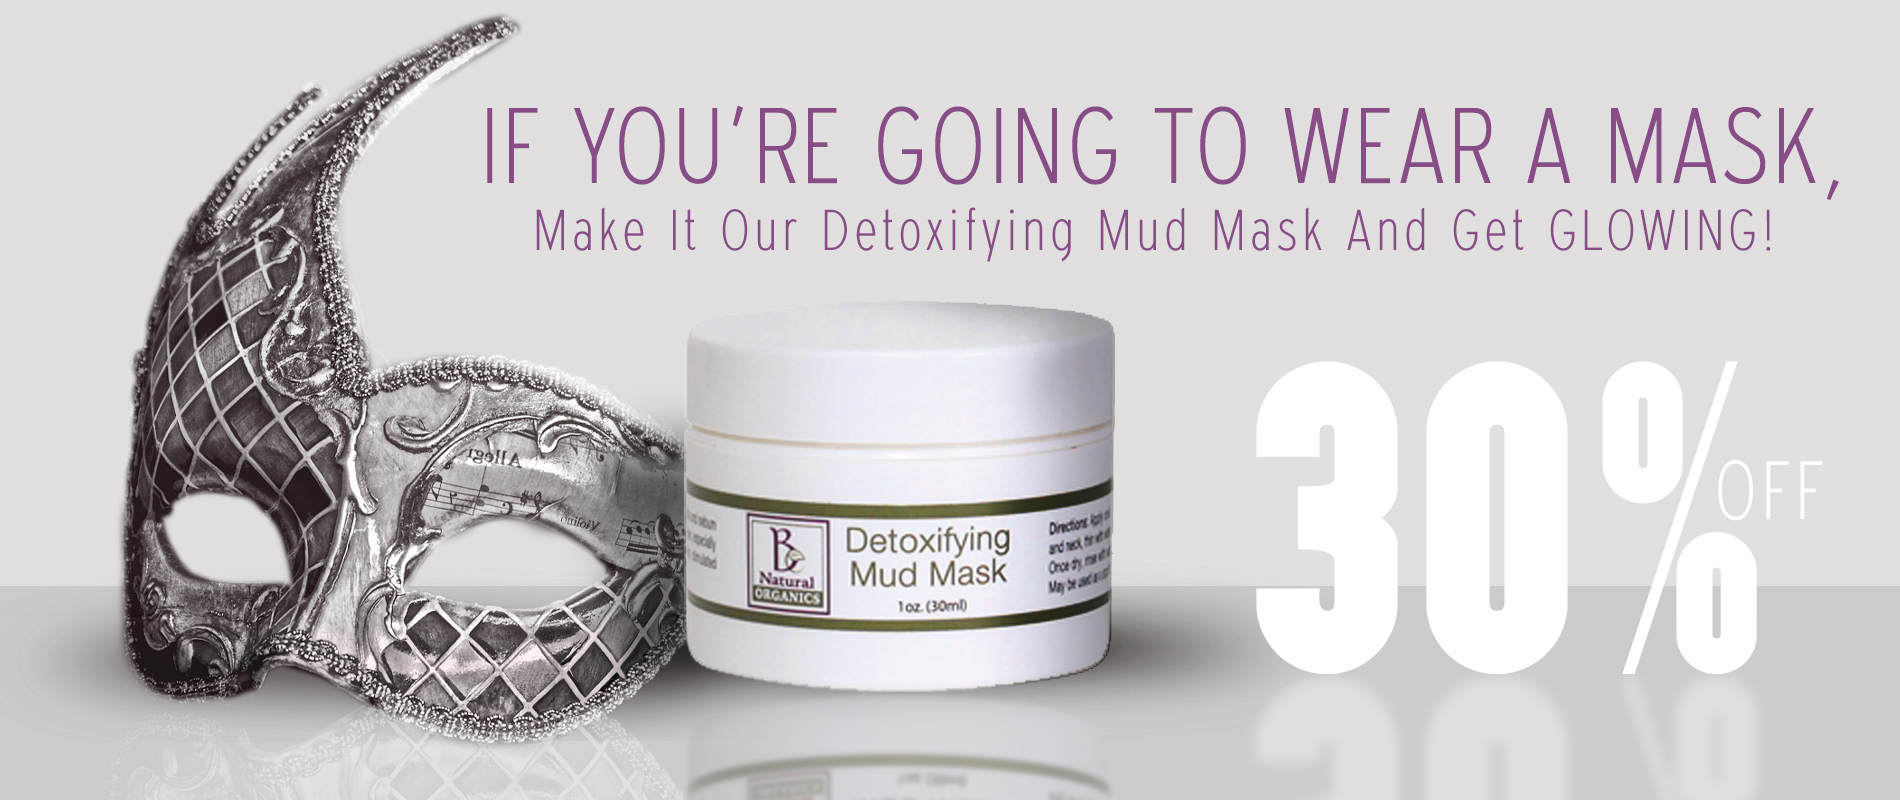 HALLOWEEN DETOX MASK 30%OFF 1900x800